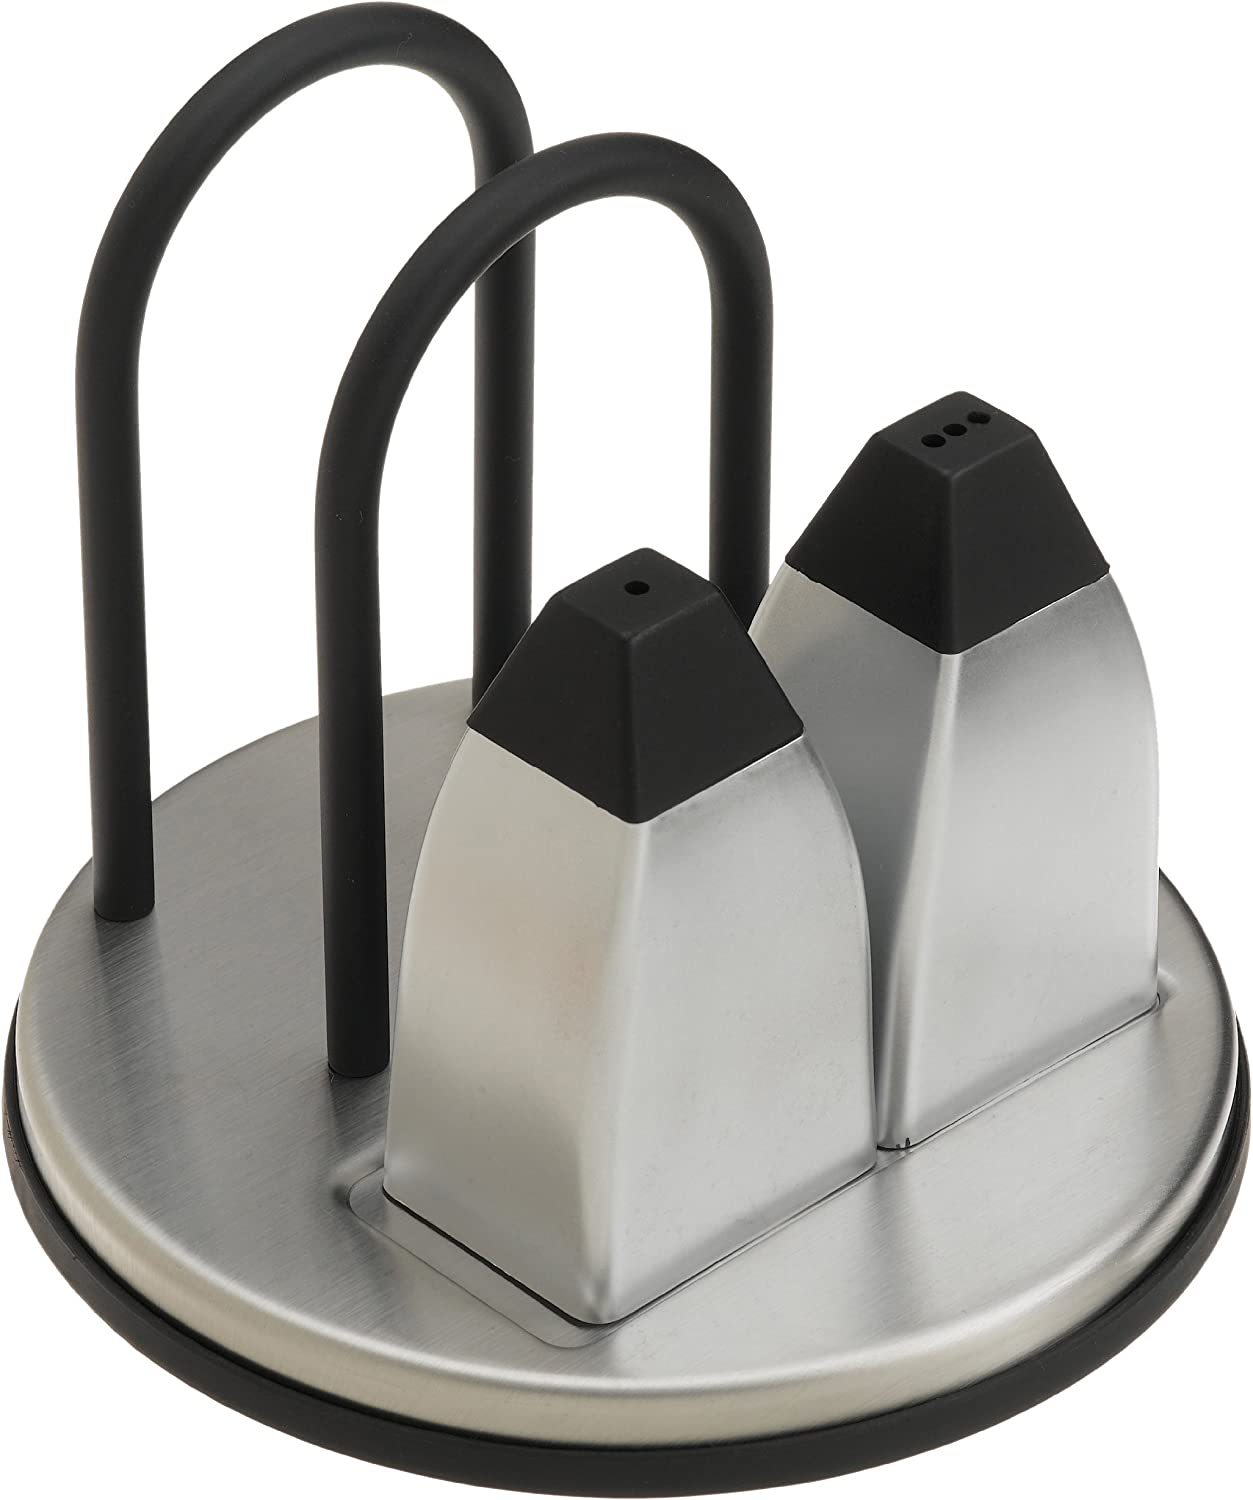 "Prodyne M-915 Napkin Holder, 6.5"", Silver"